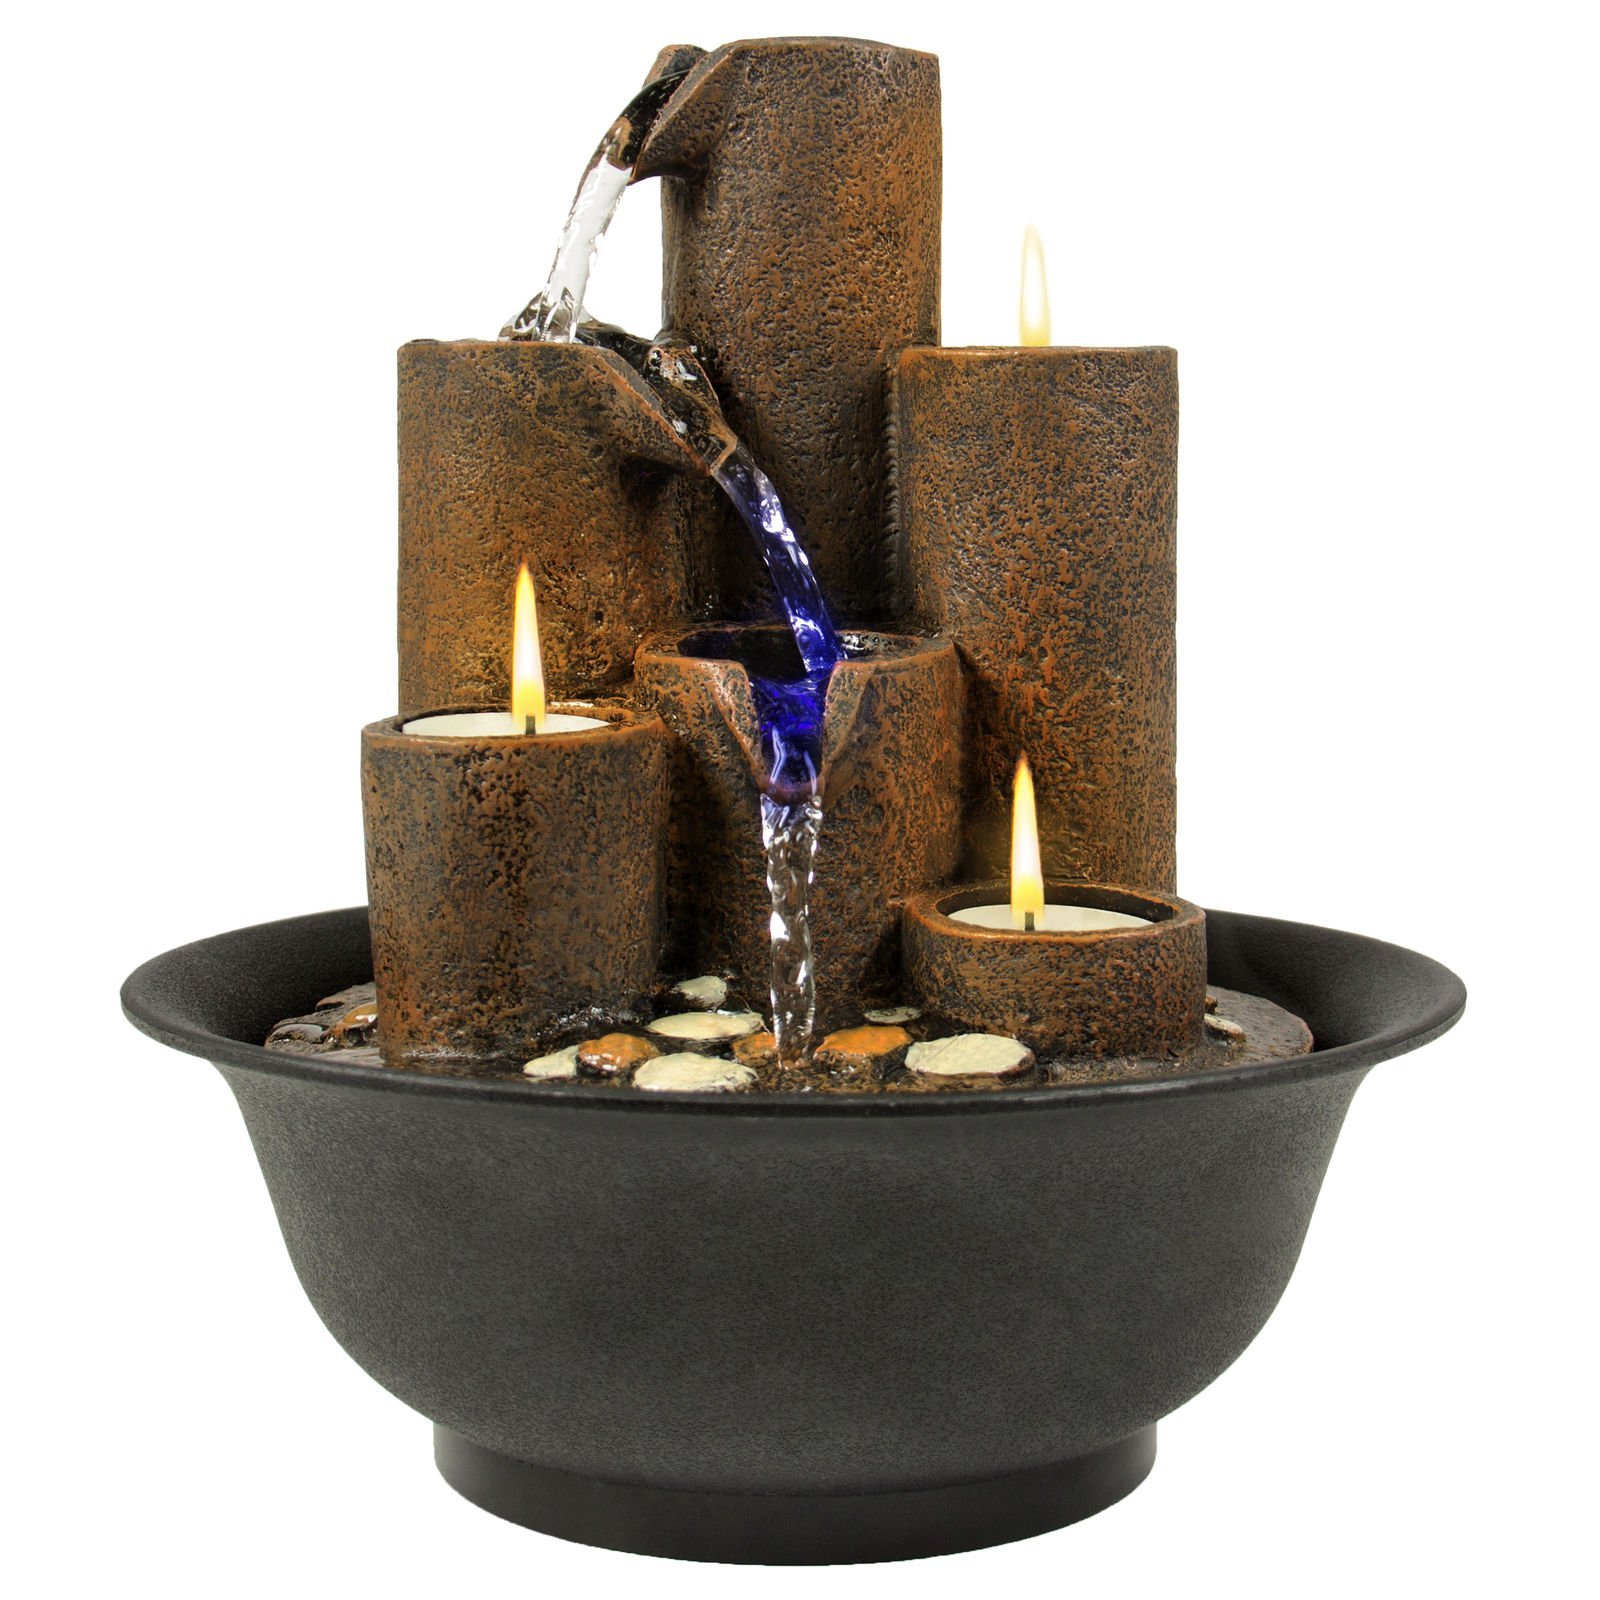 NEW Home Accent Tabletop Fountain Waterfall W/ 3 Candles And LED Lights